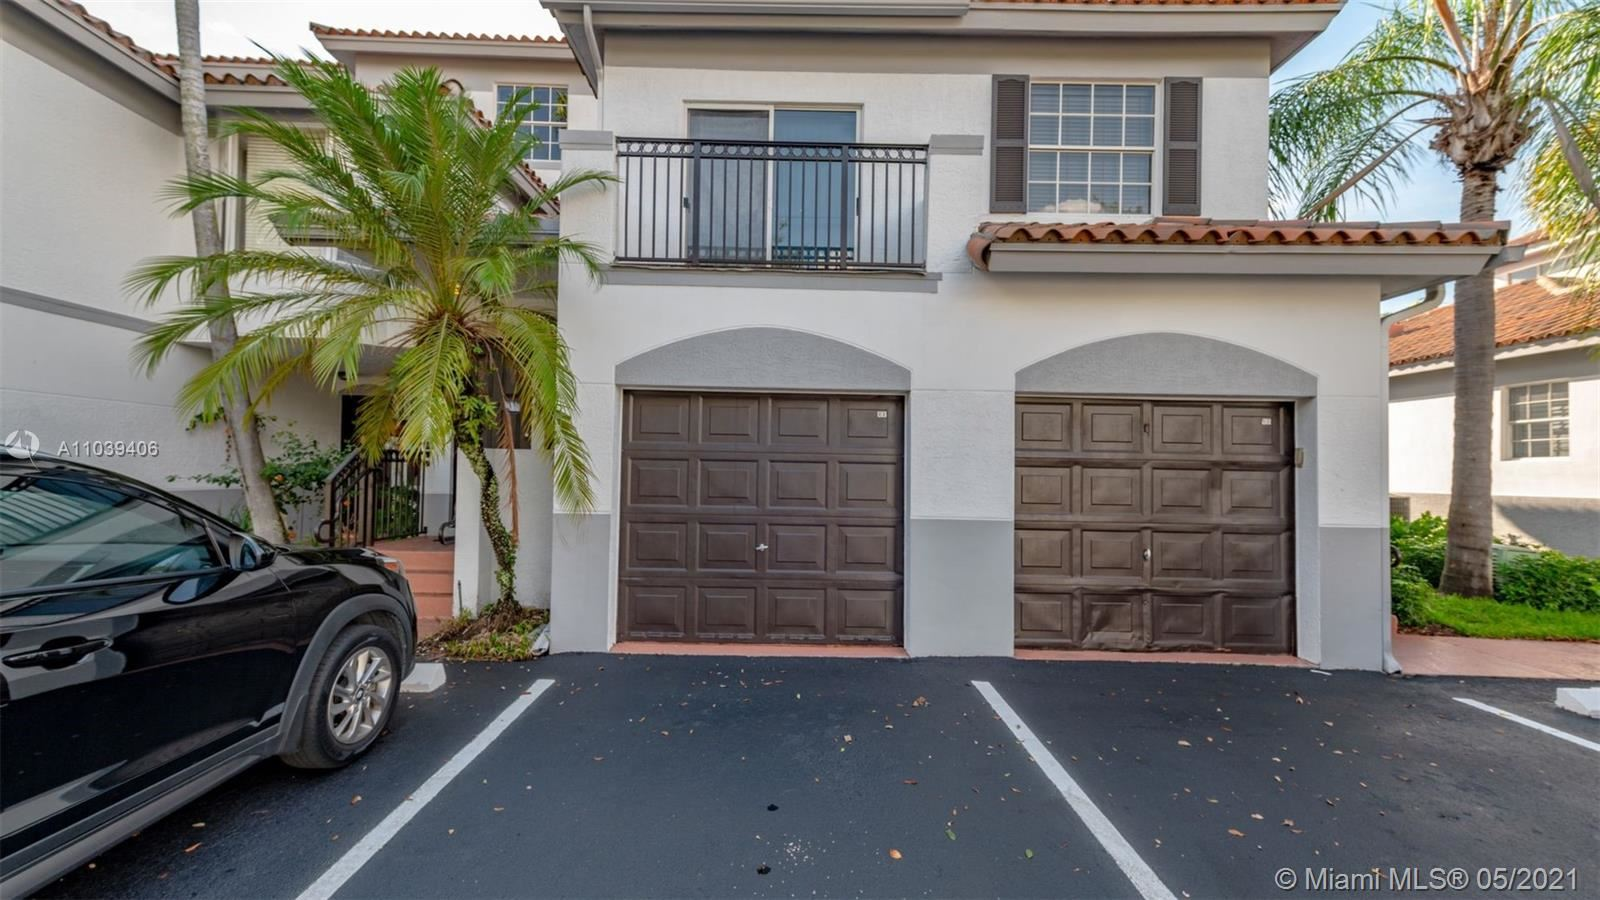 Photo of 701 SW 148th Ave #115, Sunrise, FL 33325 (MLS # A11039406)